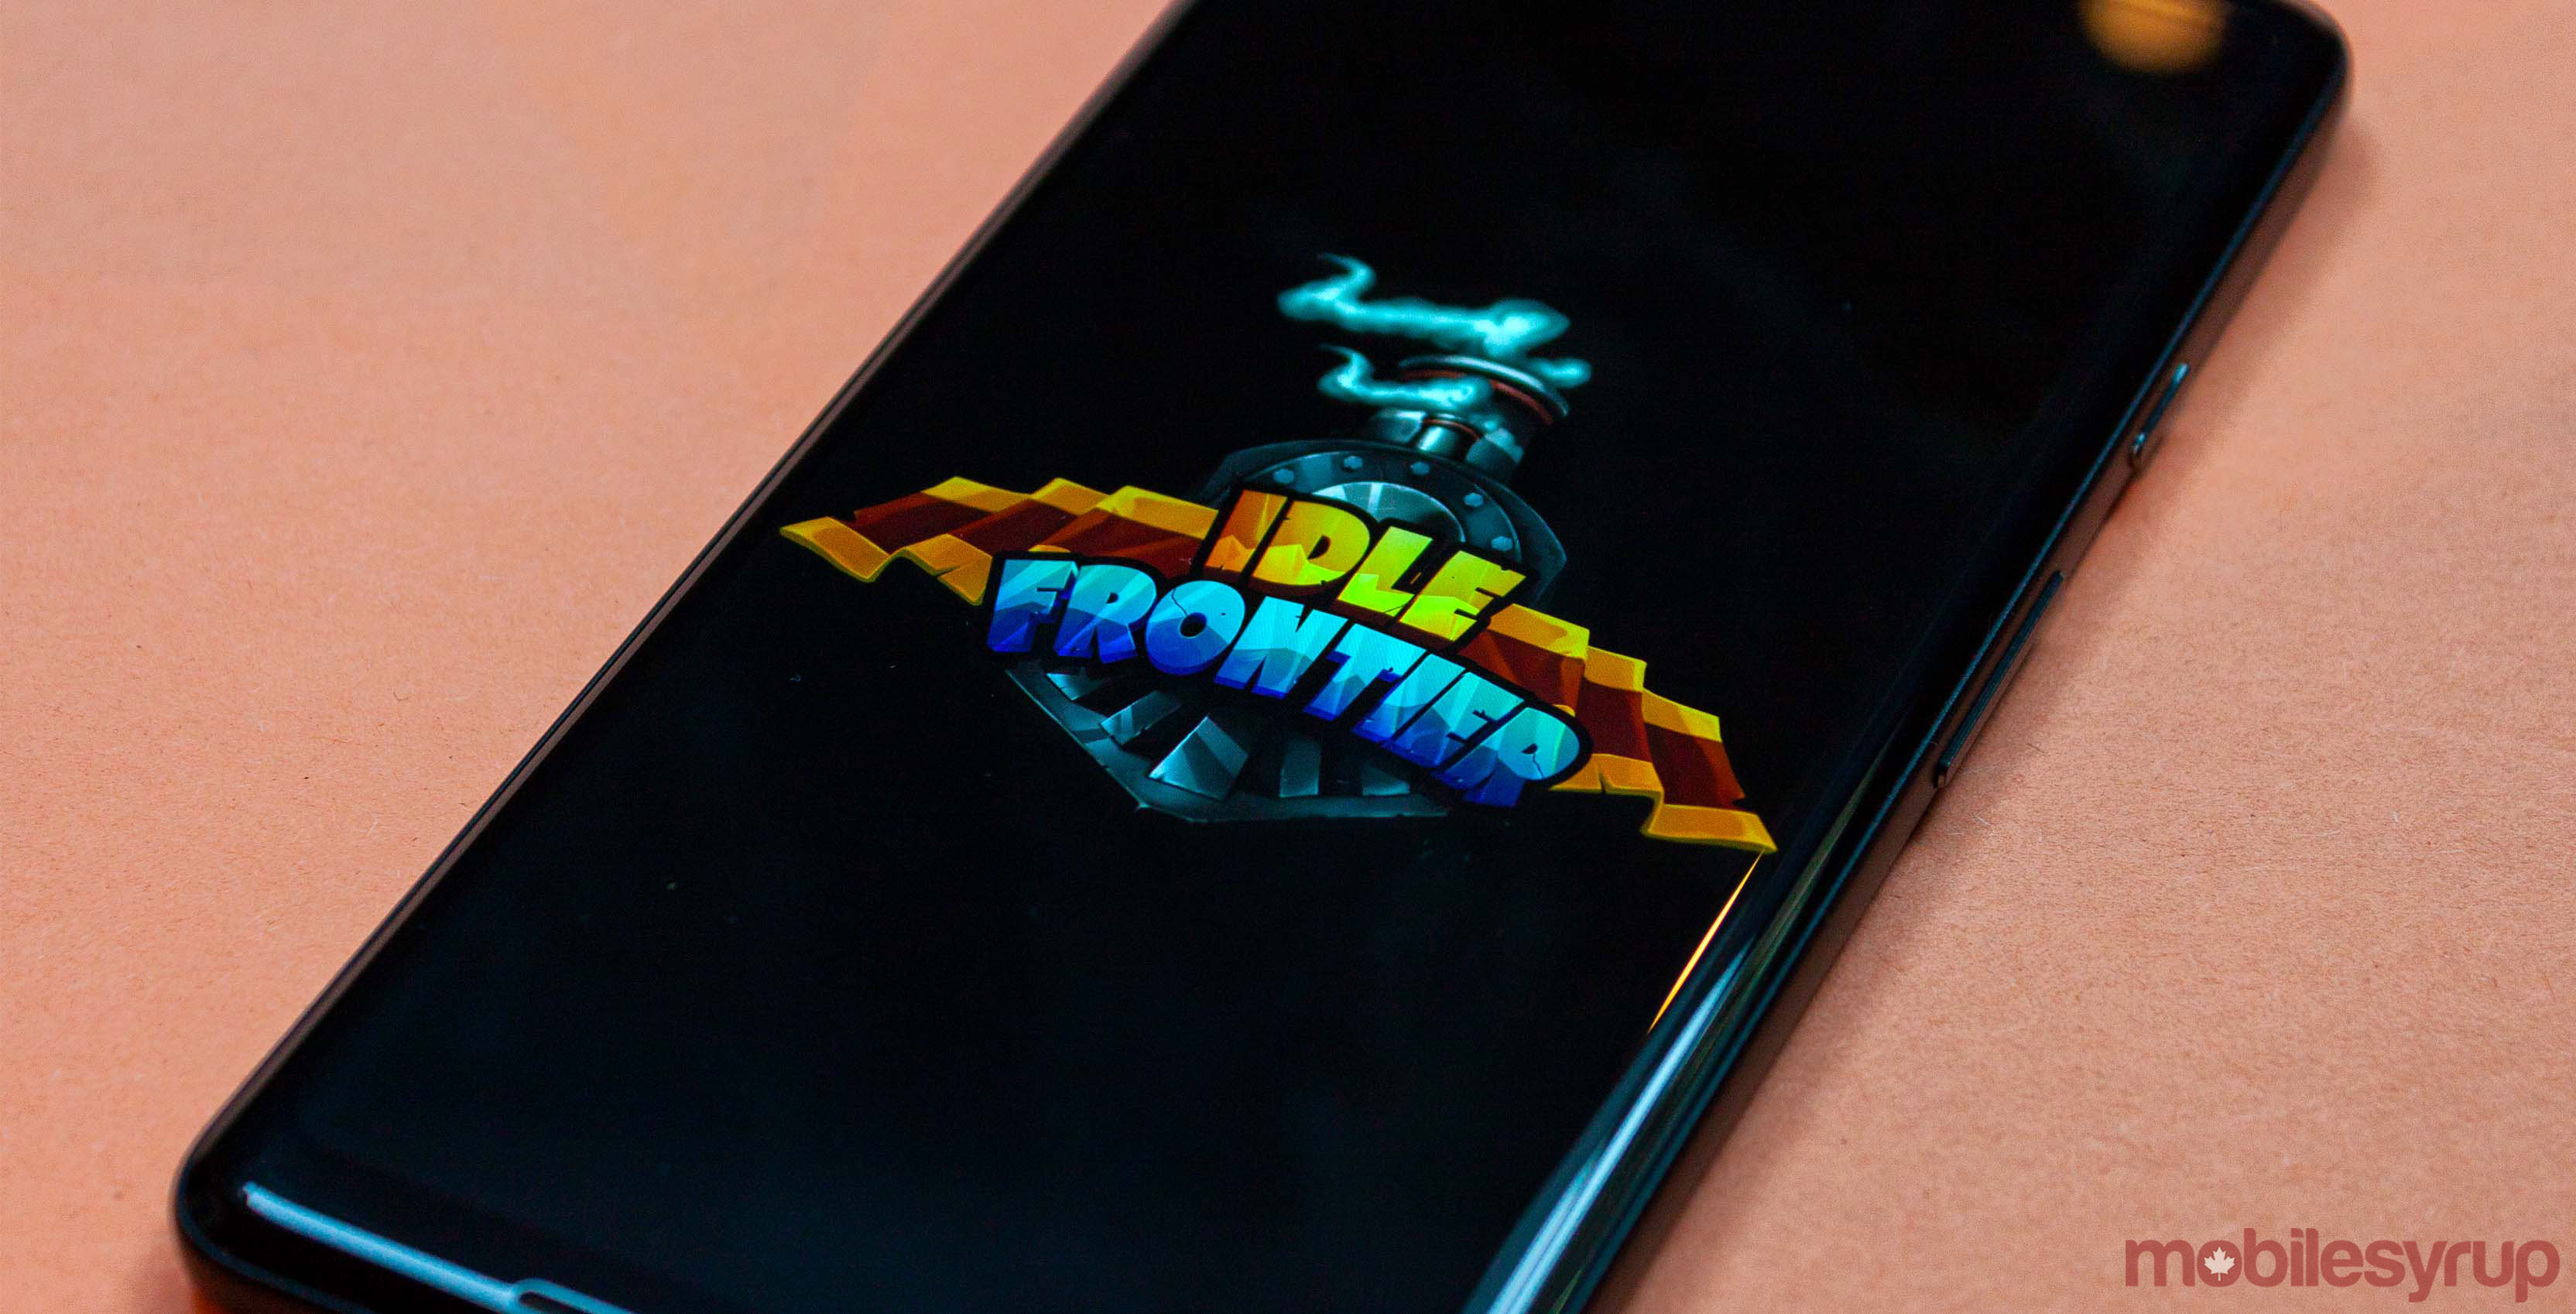 Kongregate launches new western-themed 'Idle Frontier' mobile game